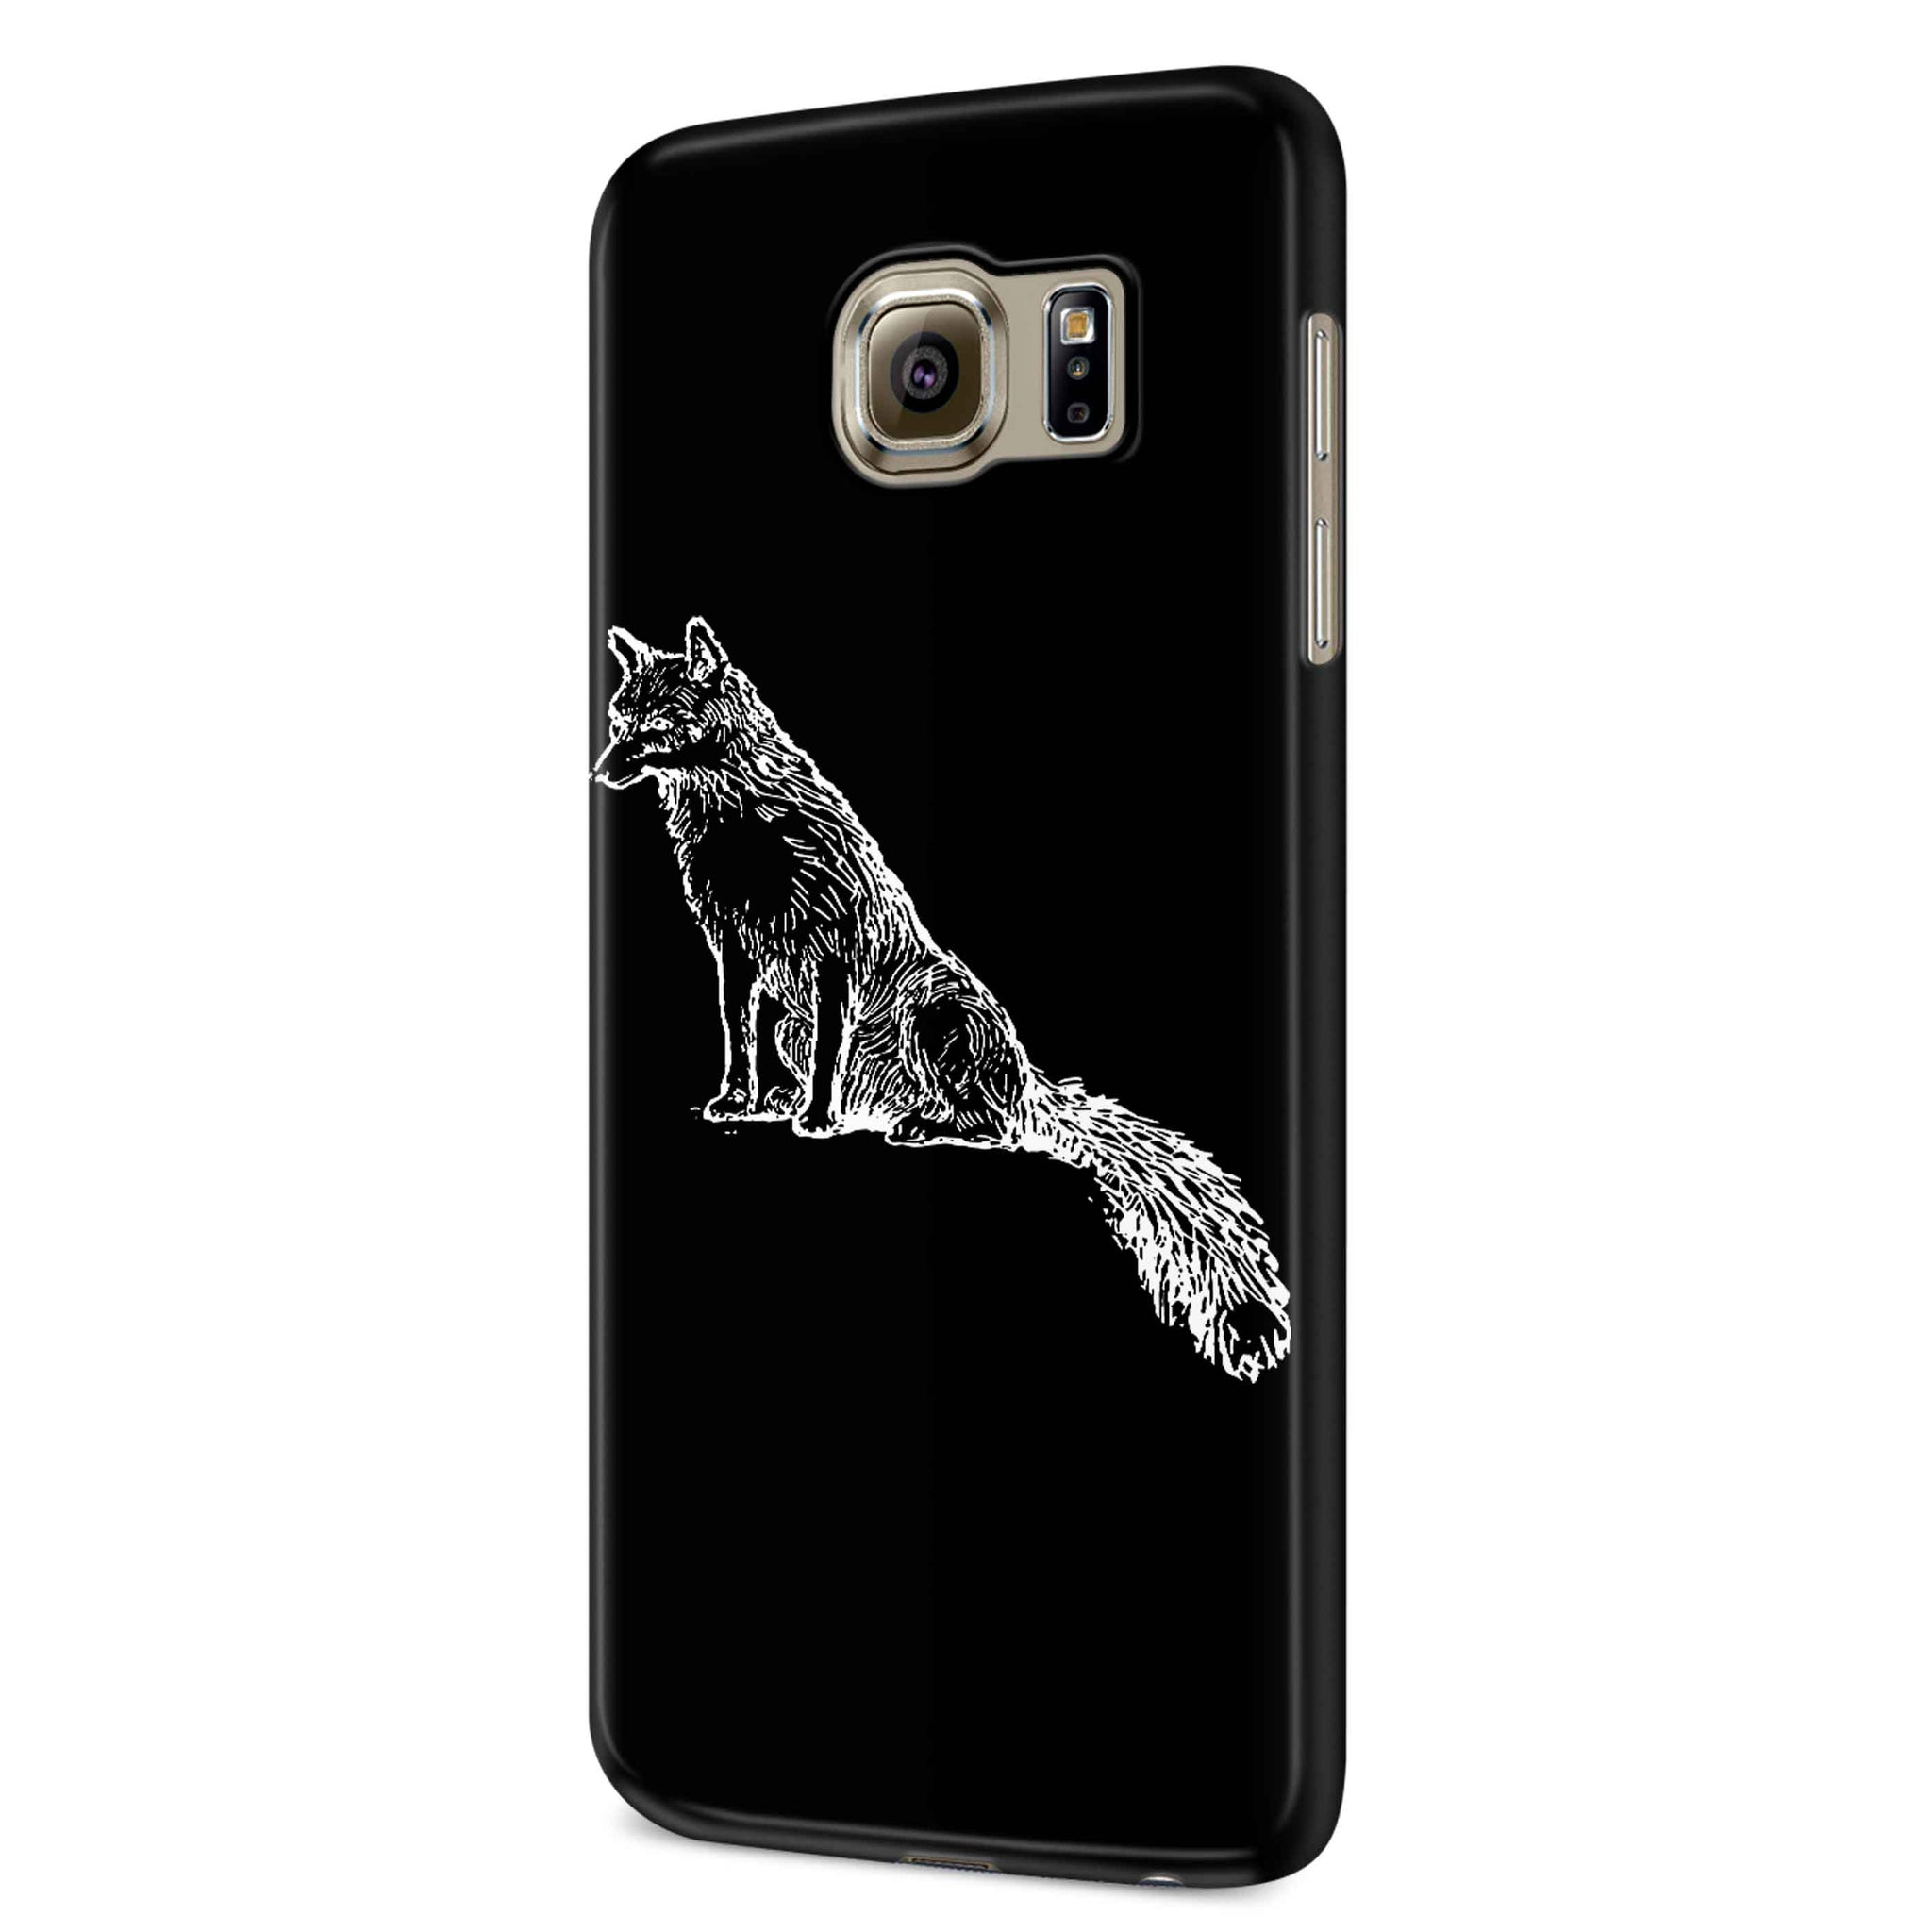 Sly Sitting Fox Samsung Galaxy S6 S6 Edge Plus/ S7 S7 Edge / S8 S8 Plus / S9 S9 plus 3D Case